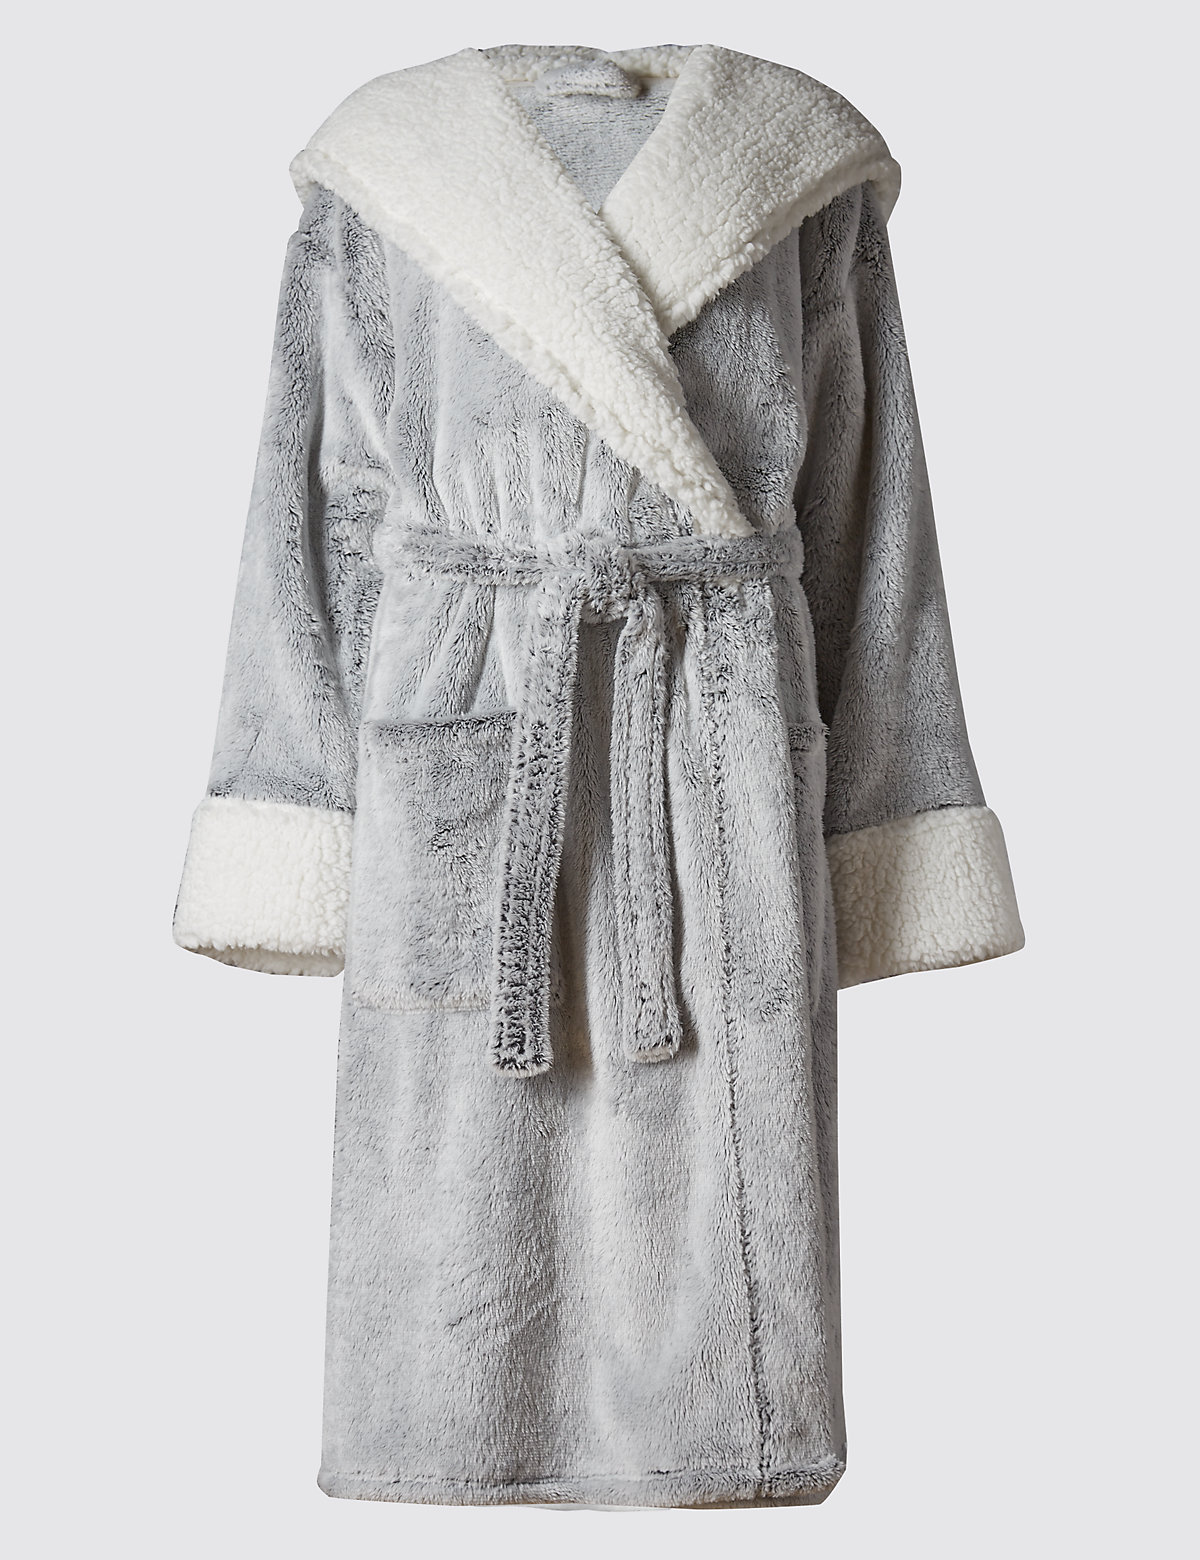 Luxury Hooded Shimmer Dressing Gown | Autograph | M&S